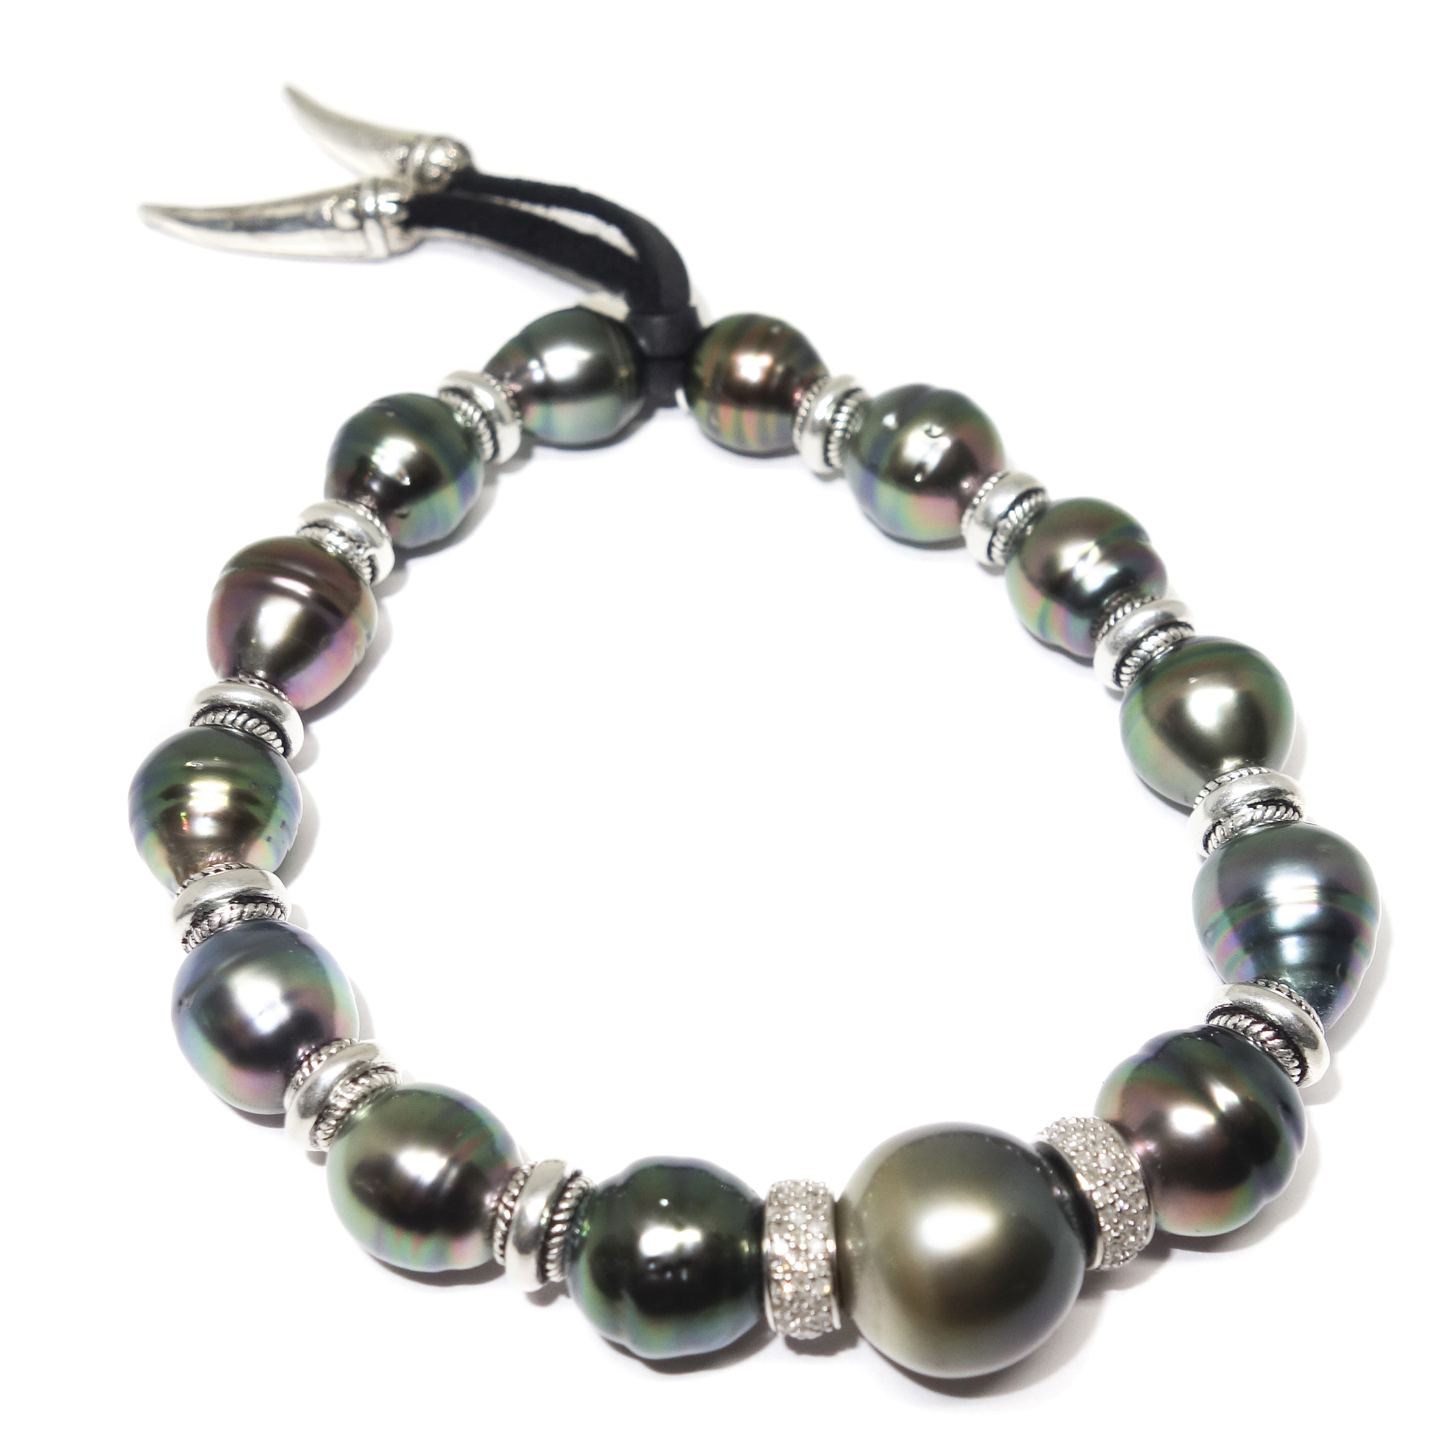 Diamond and South Sea Pearl Men's Bracelet